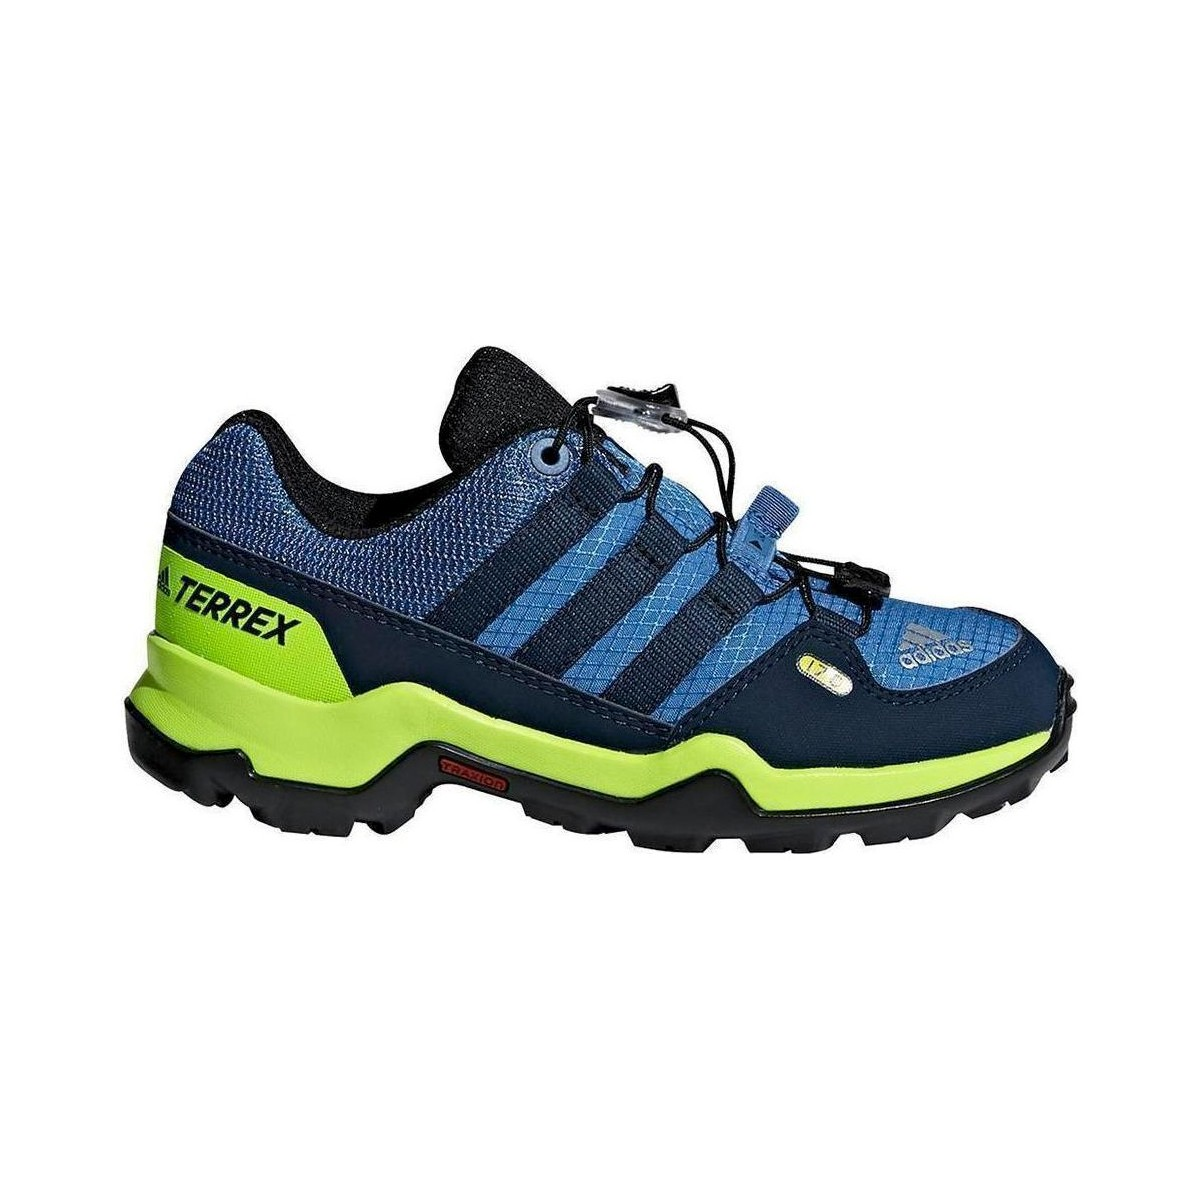 finest selection 469c2 9517e Pedule hiking Adidas Terrex Gtx Bambino blu-giallo